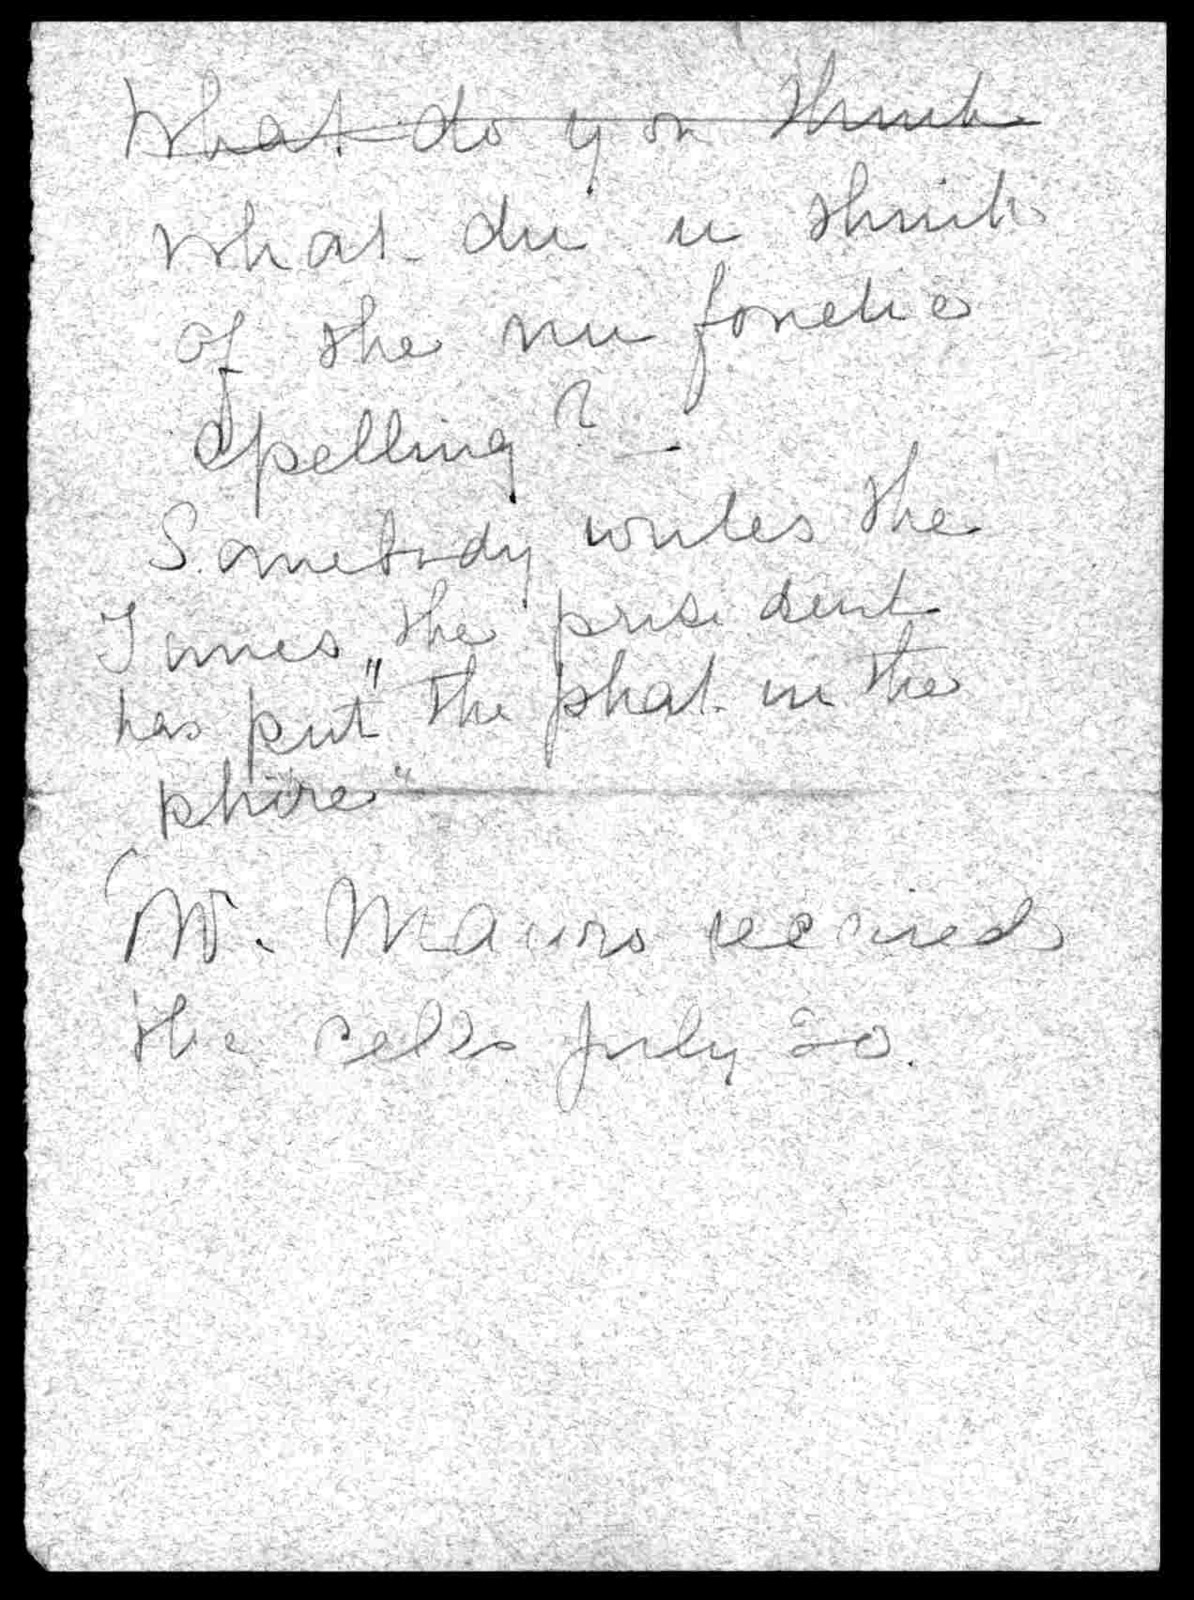 Letter from Mabel Hubbard Bell to Alexander Graham Bell, August 26, 1906